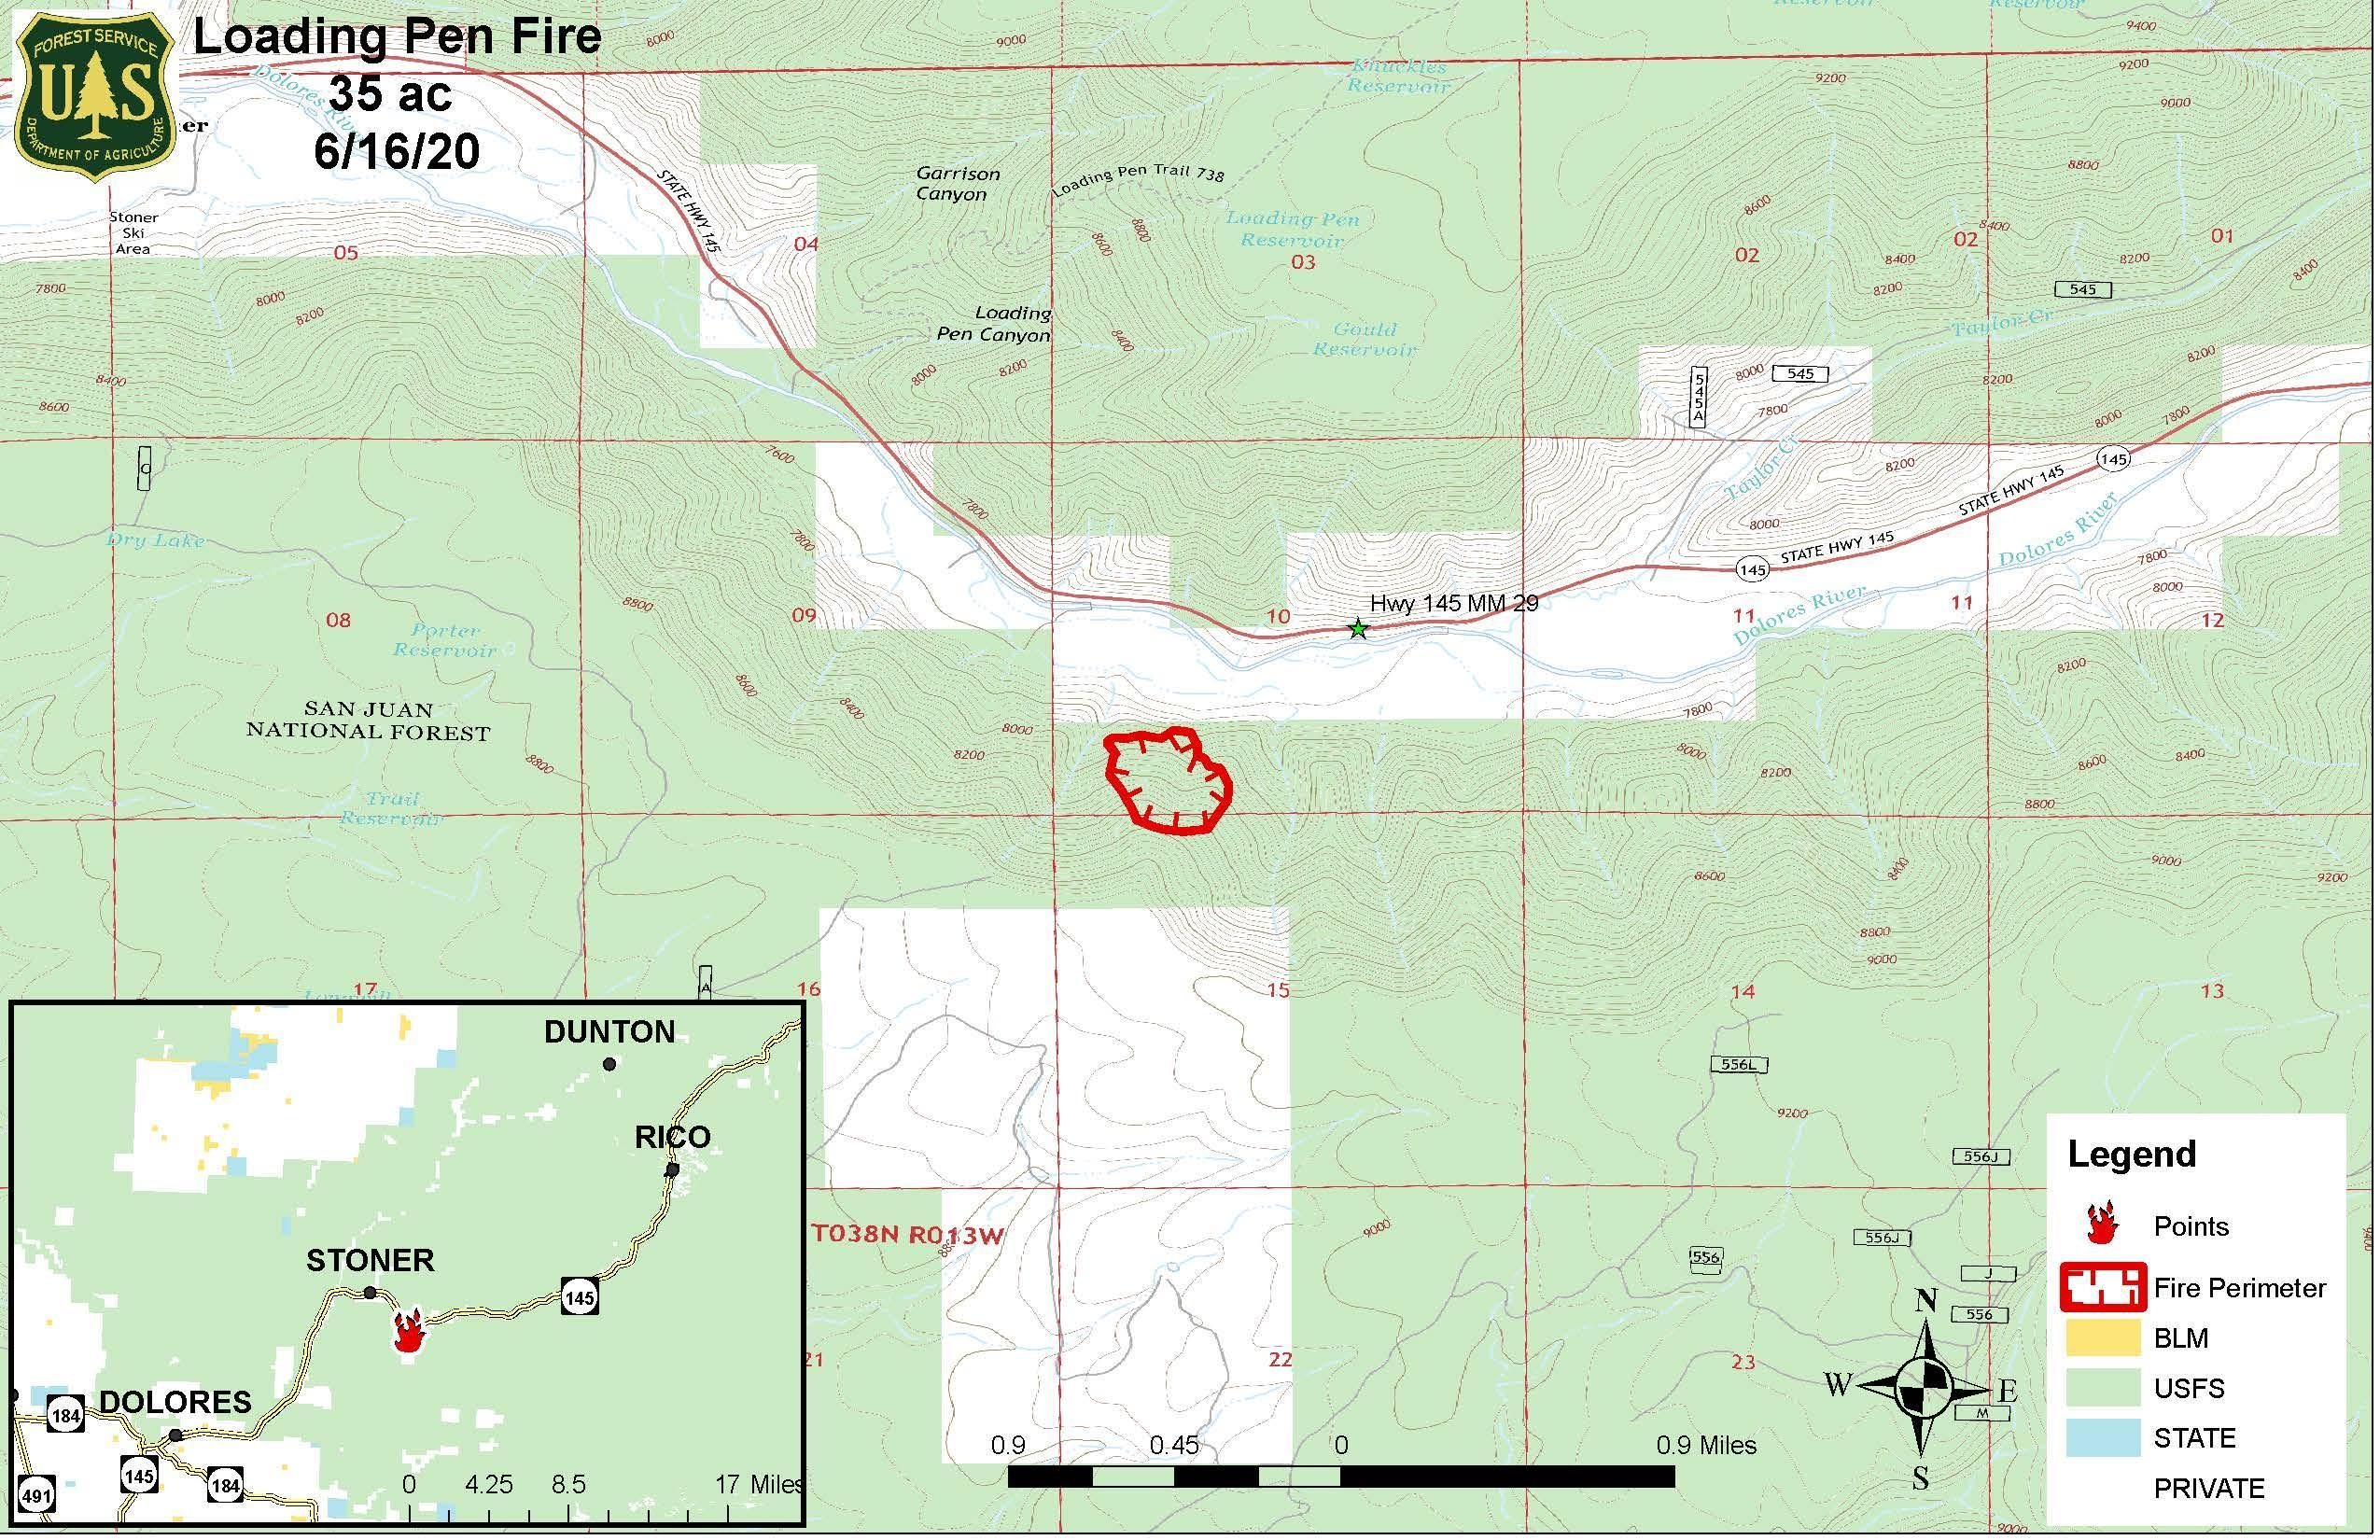 A map showing the location of the Loading Pen FIre with an inset showing the surrounding area.